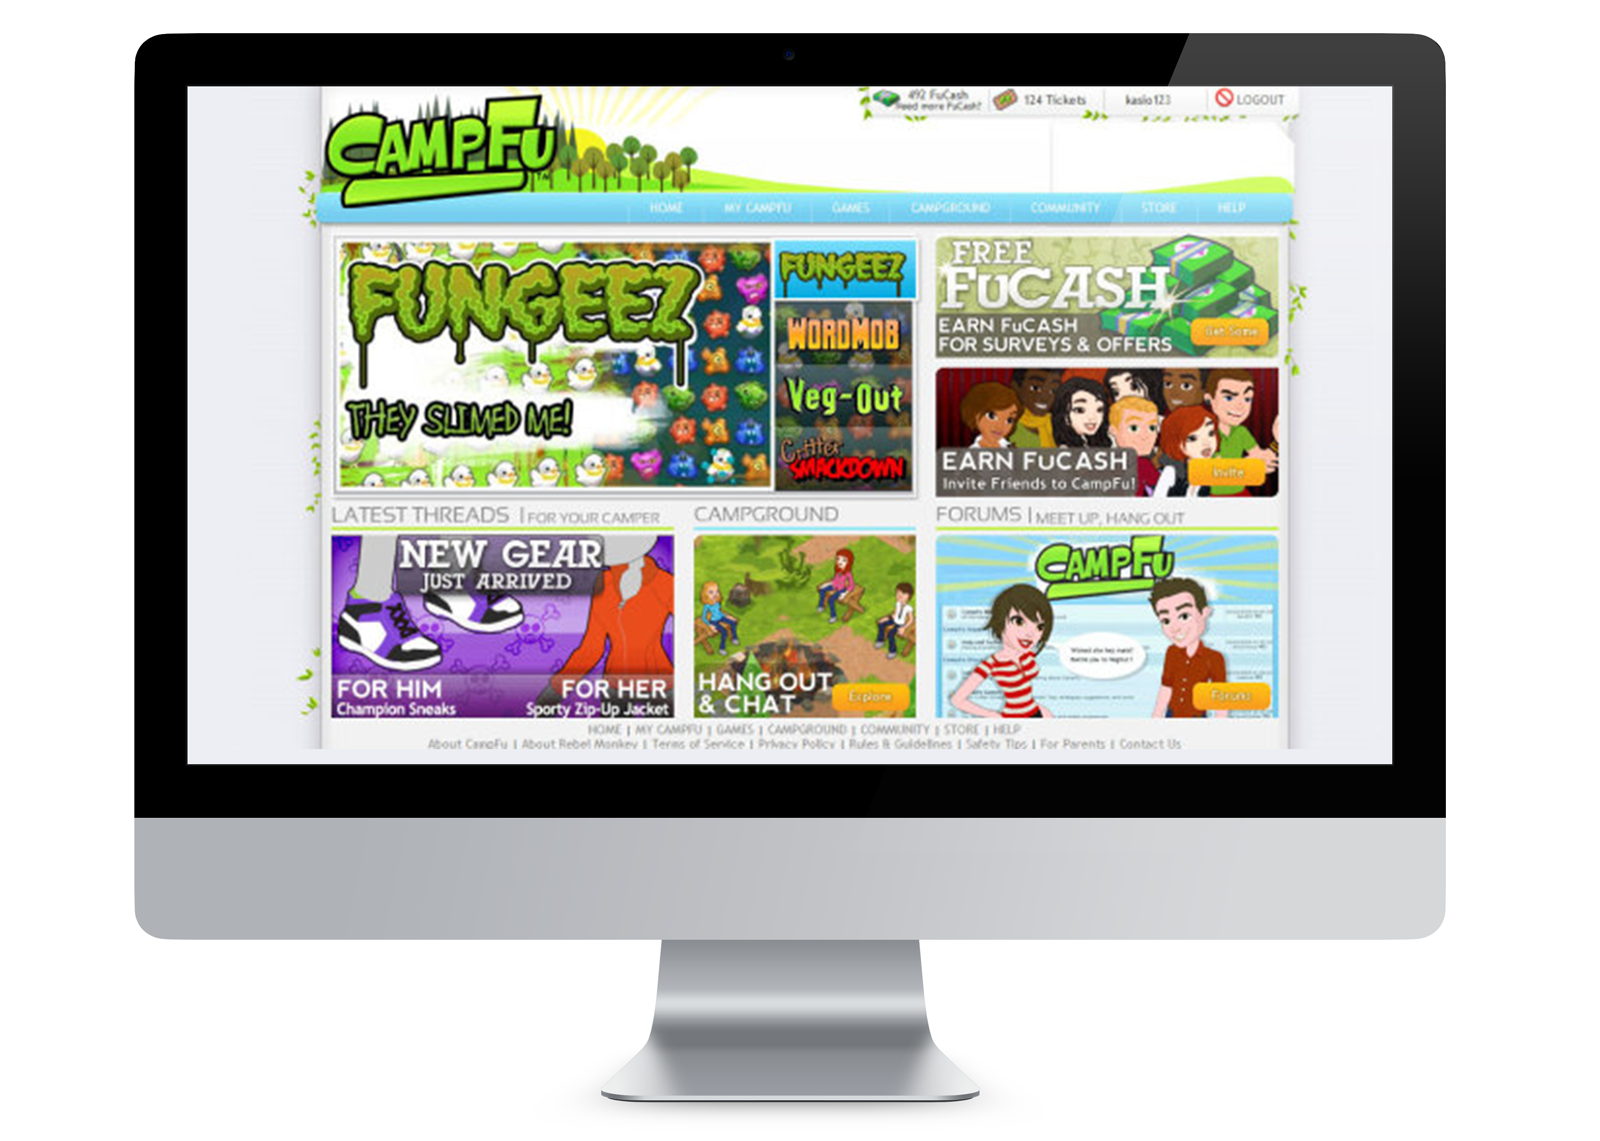 CAMP-FU Website Home Page